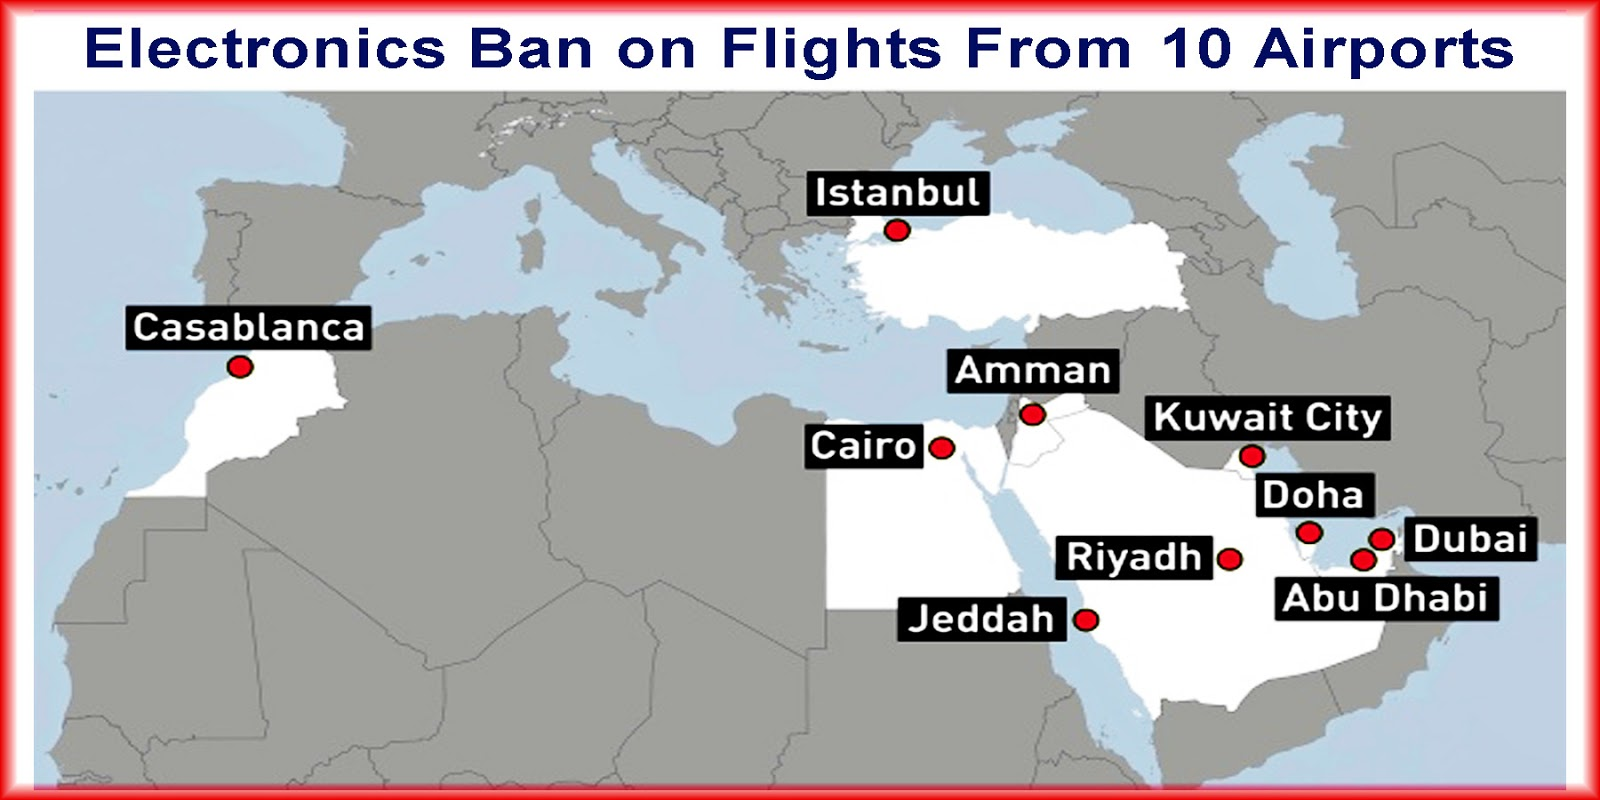 the march 2017 electronics ban applied to non stop routes from these airports